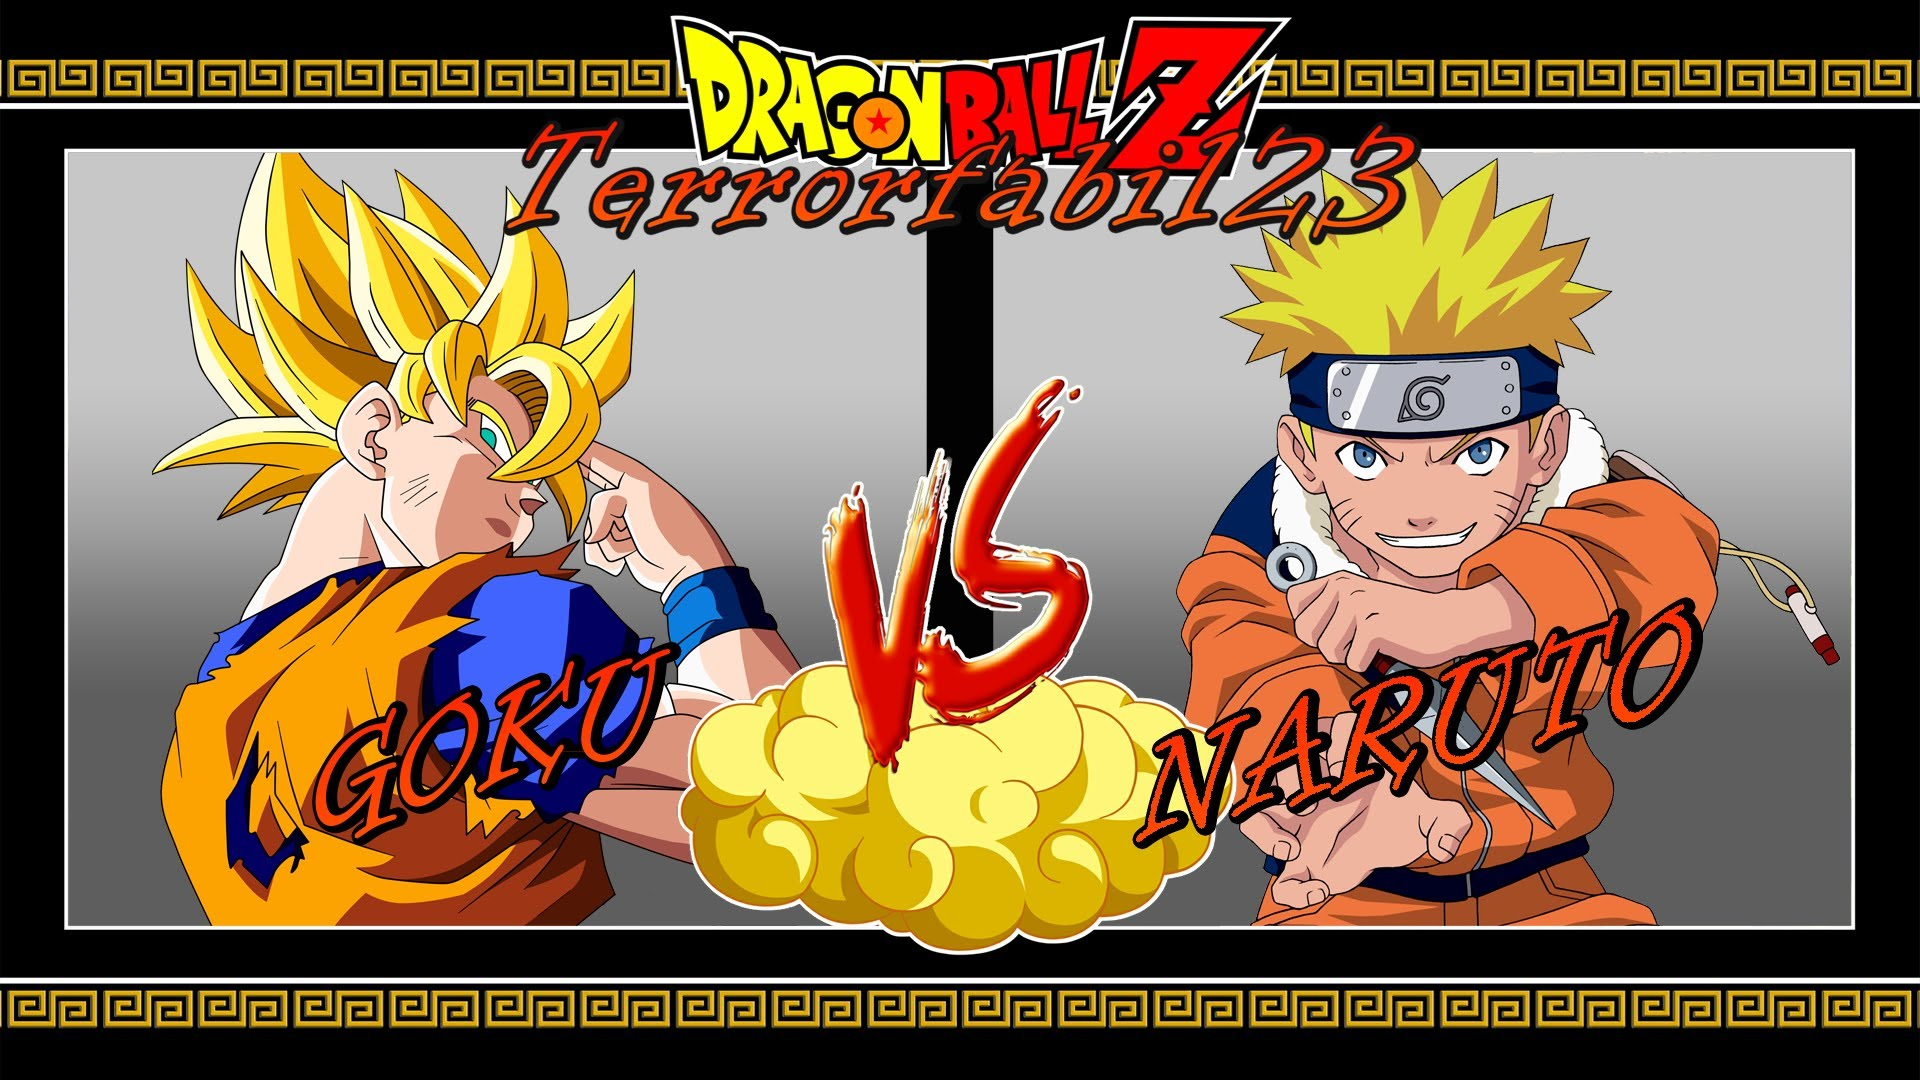 Browse our New Gallery of Son Goku Naruto HD Wallpapers to 1920x1080